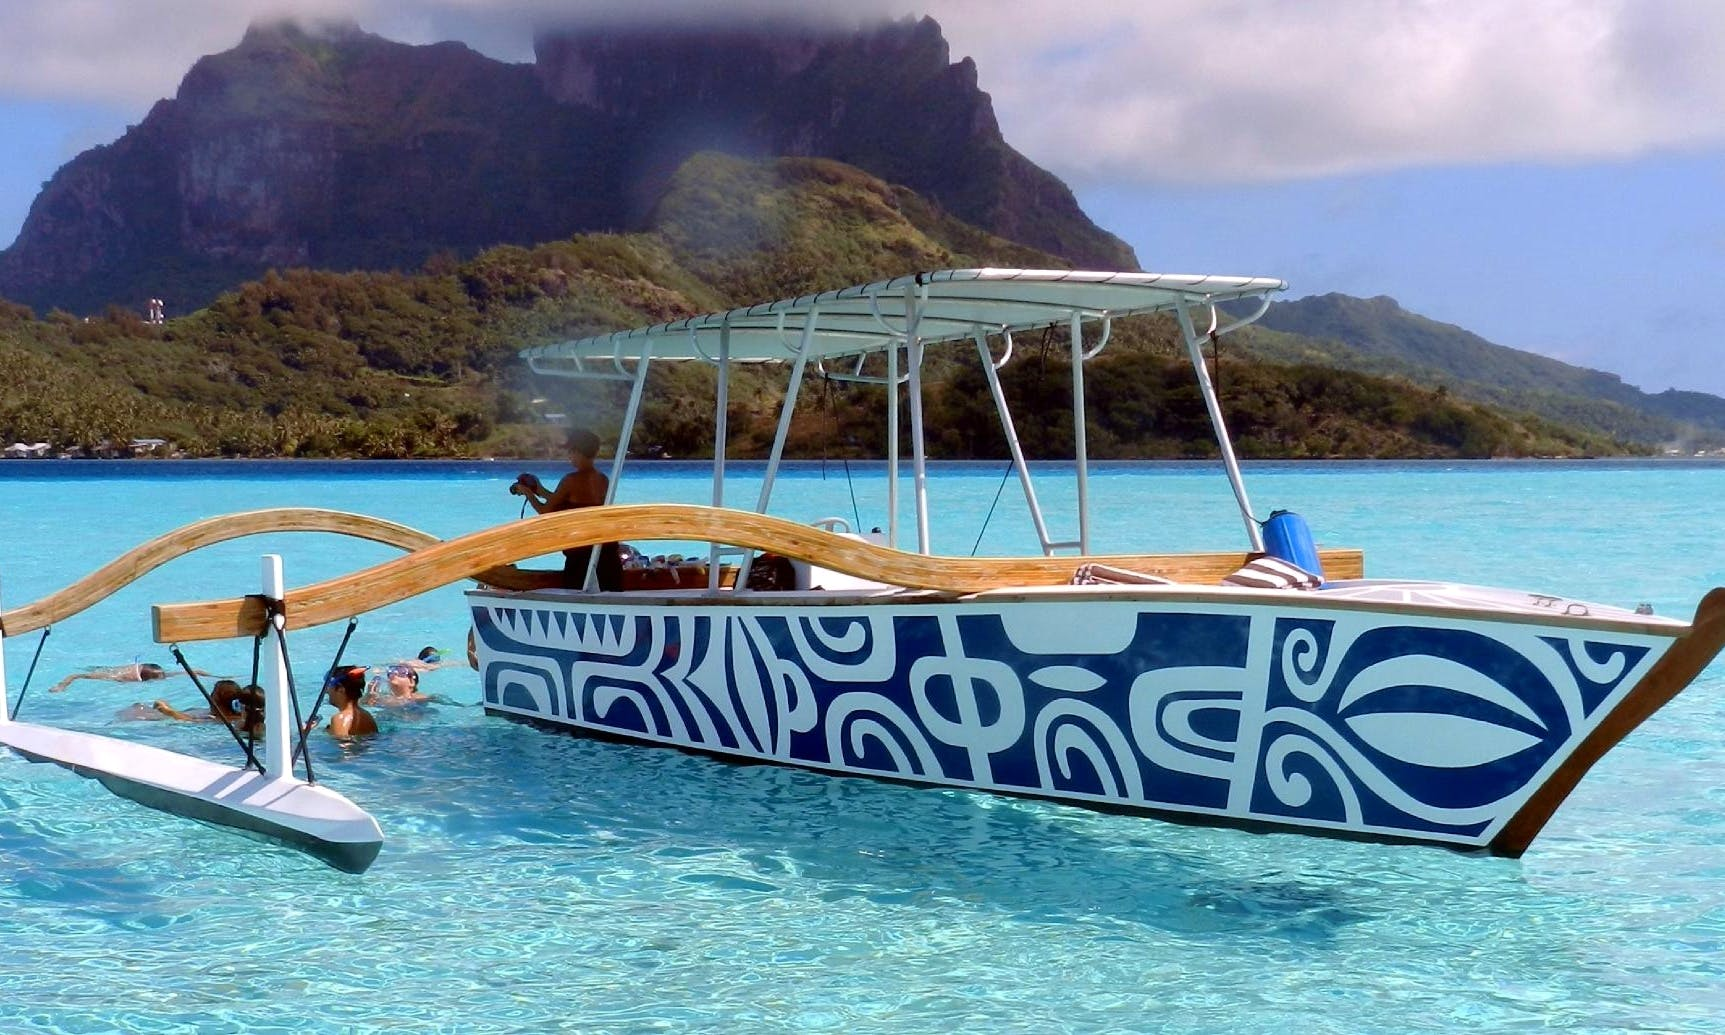 Book an Island Tours in Îles Sous-le-Vent, French Polynesia on a Center Console